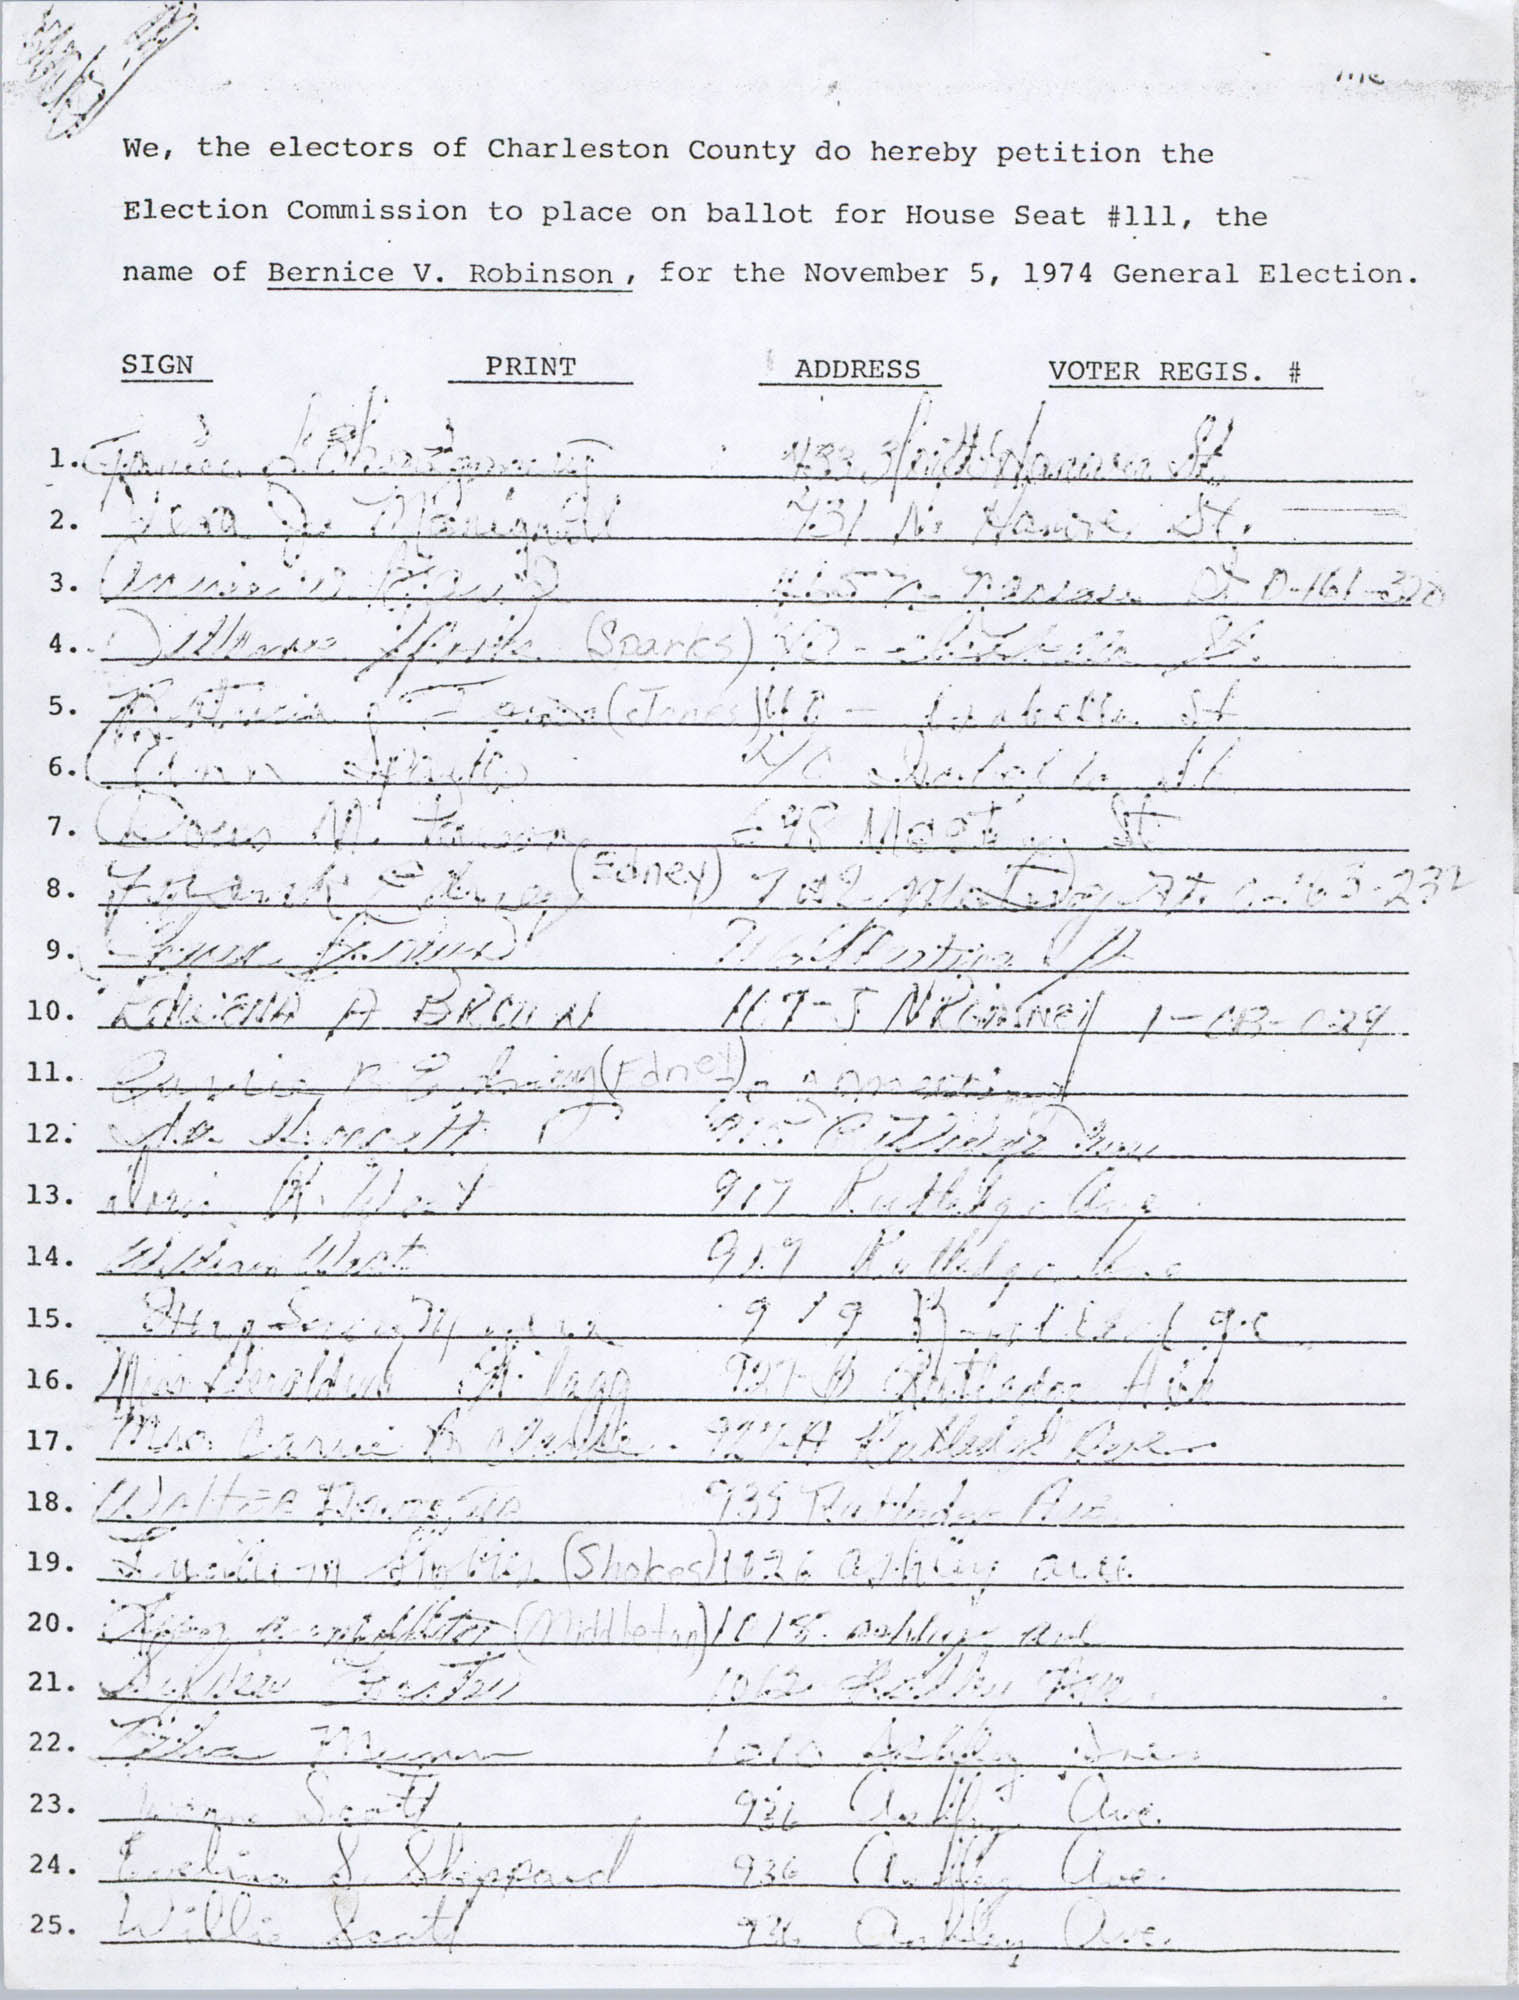 Bernice Robinson Petition for South Carolina House of Representatives, Page 37